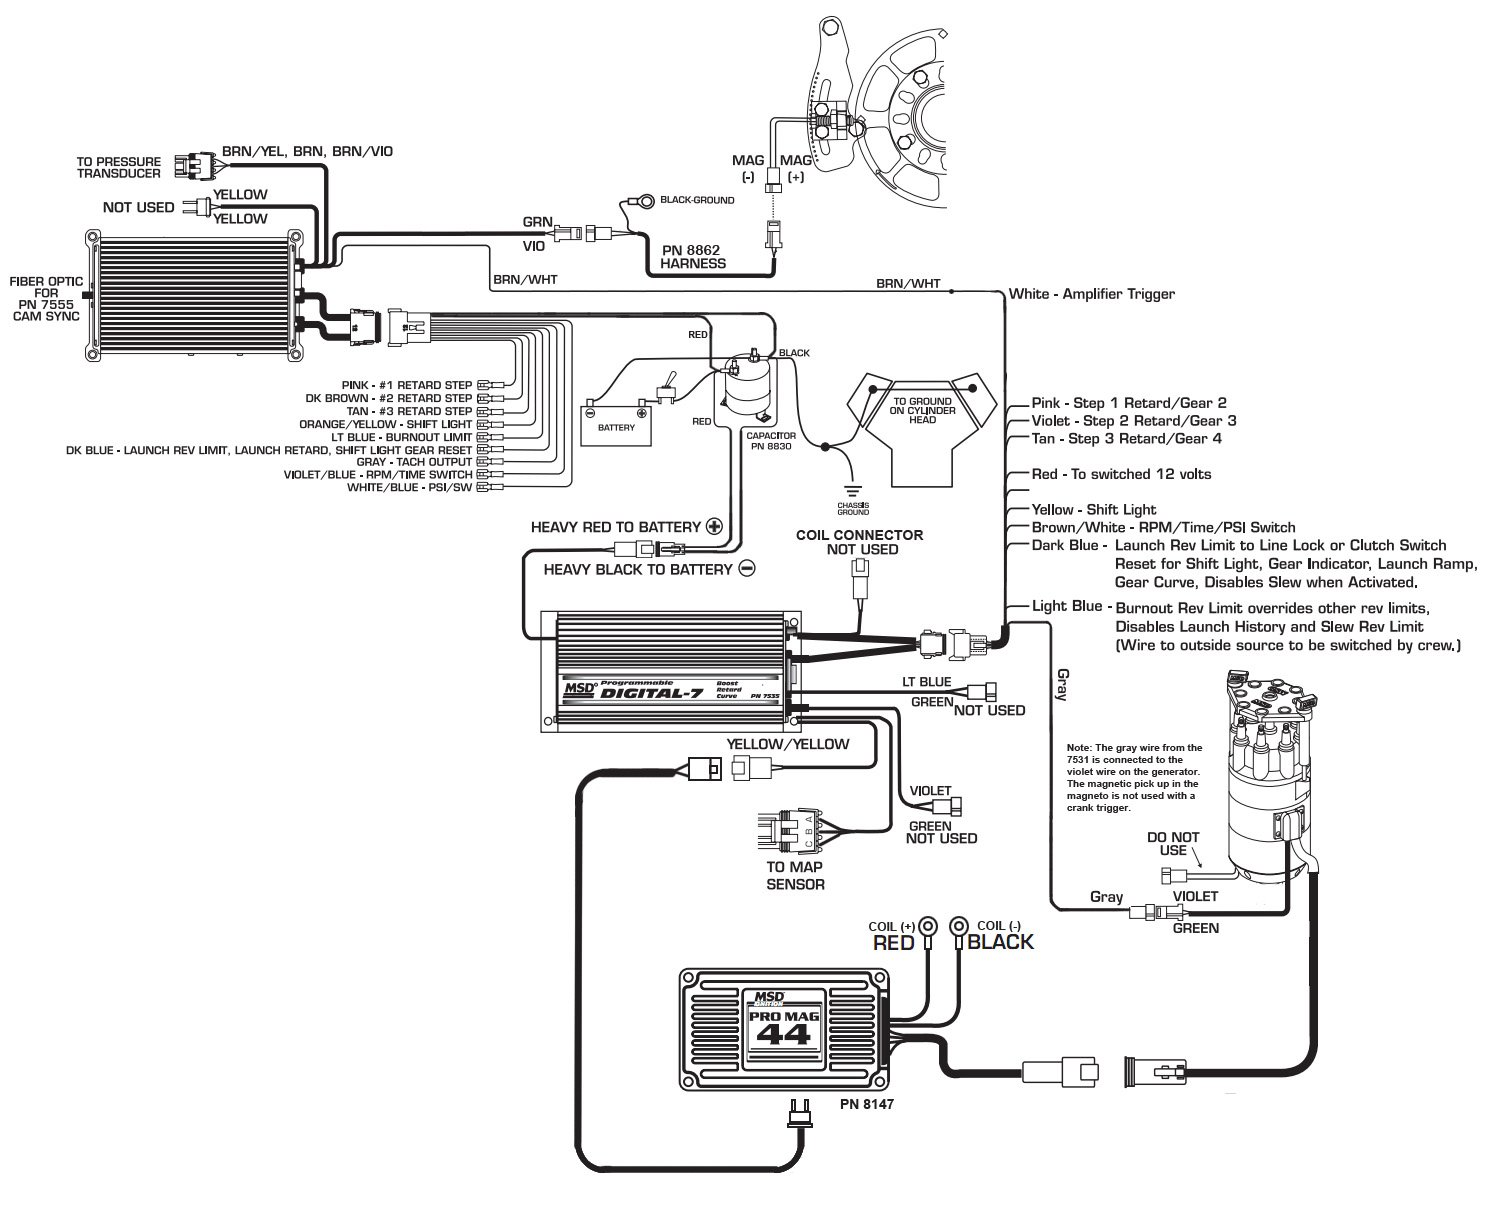 hight resolution of 8973 to 7531 pro mag reva holley blogmsd promag wiring diagram 5